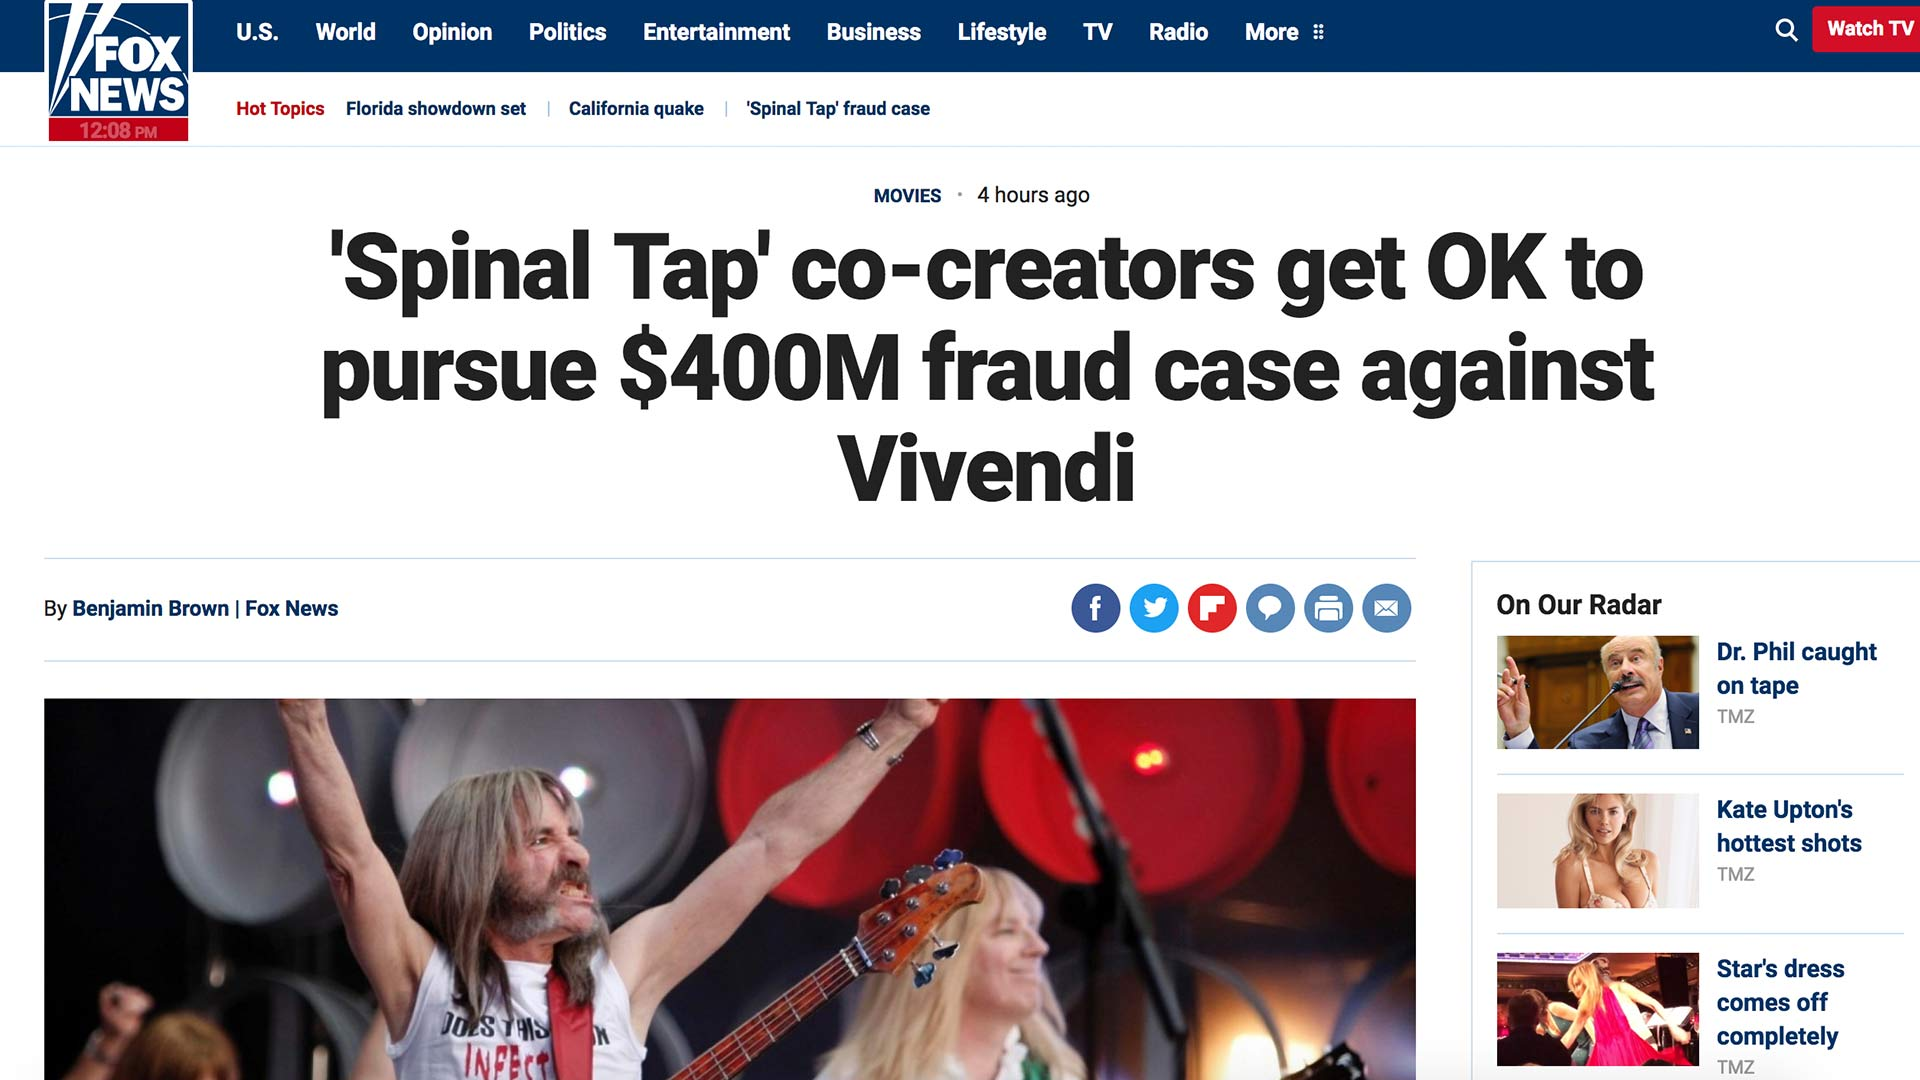 Fairness Rocks News 'Spinal Tap' co-creators get OK to pursue $400M fraud case against Vivendi